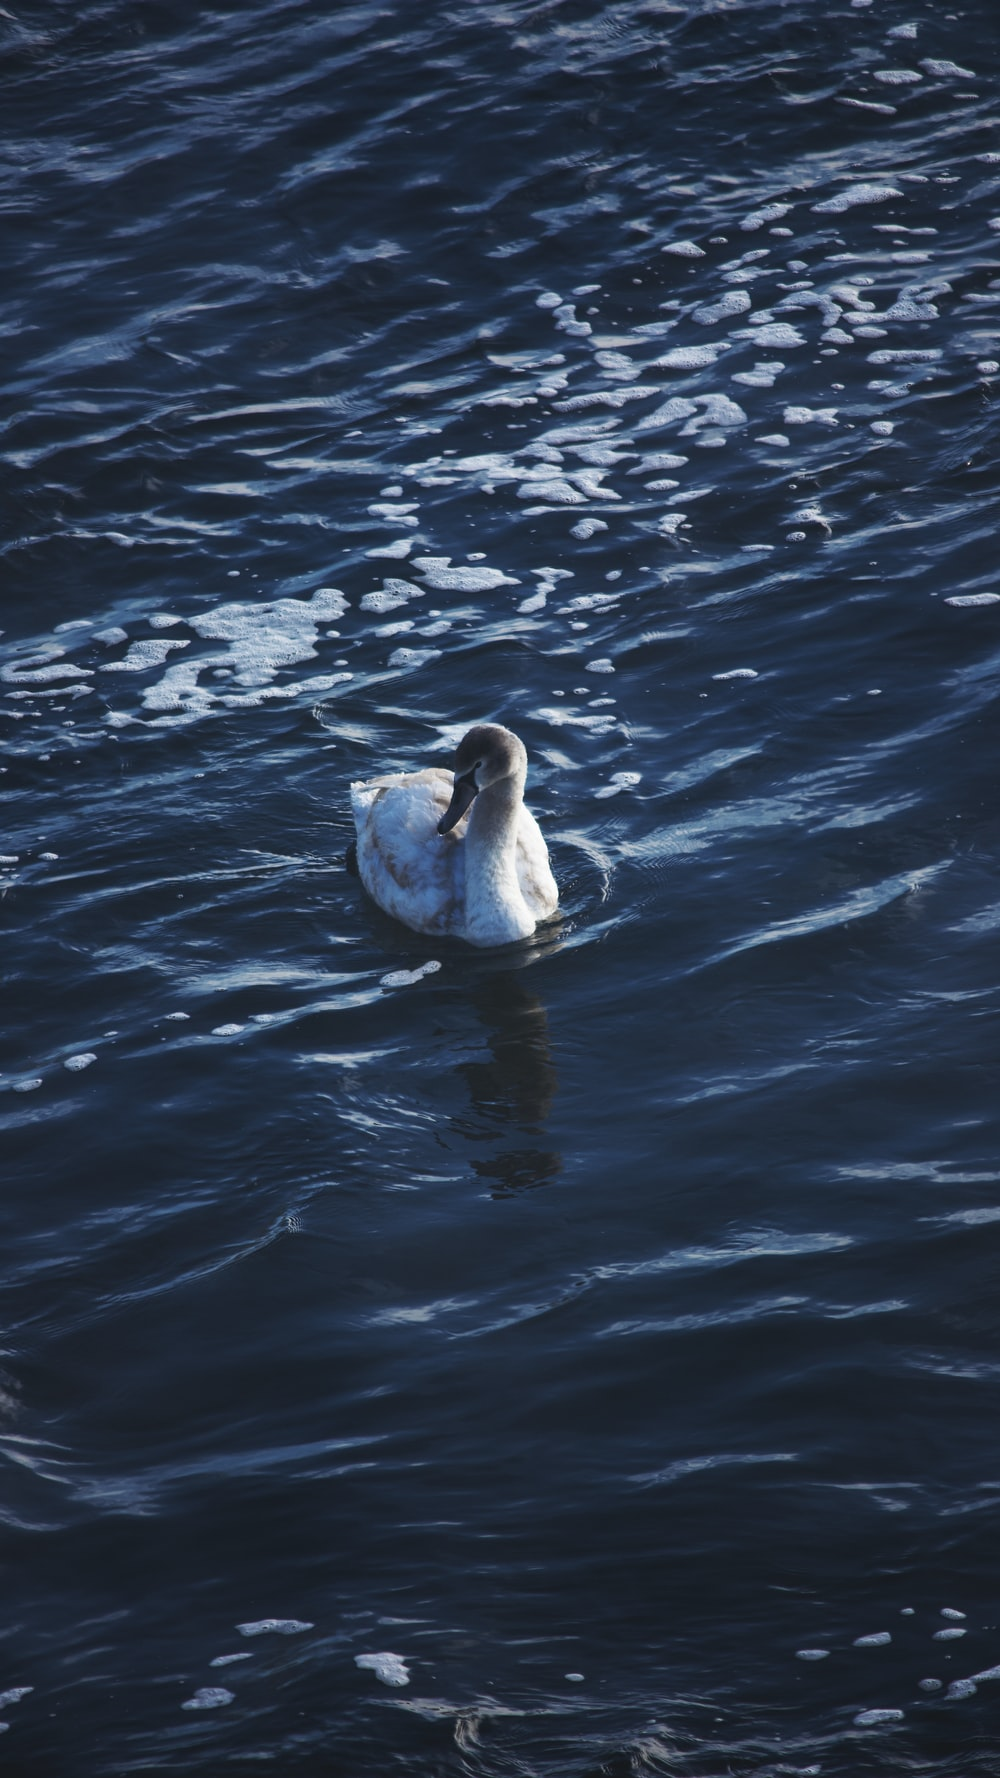 white duck on body of water during daytime